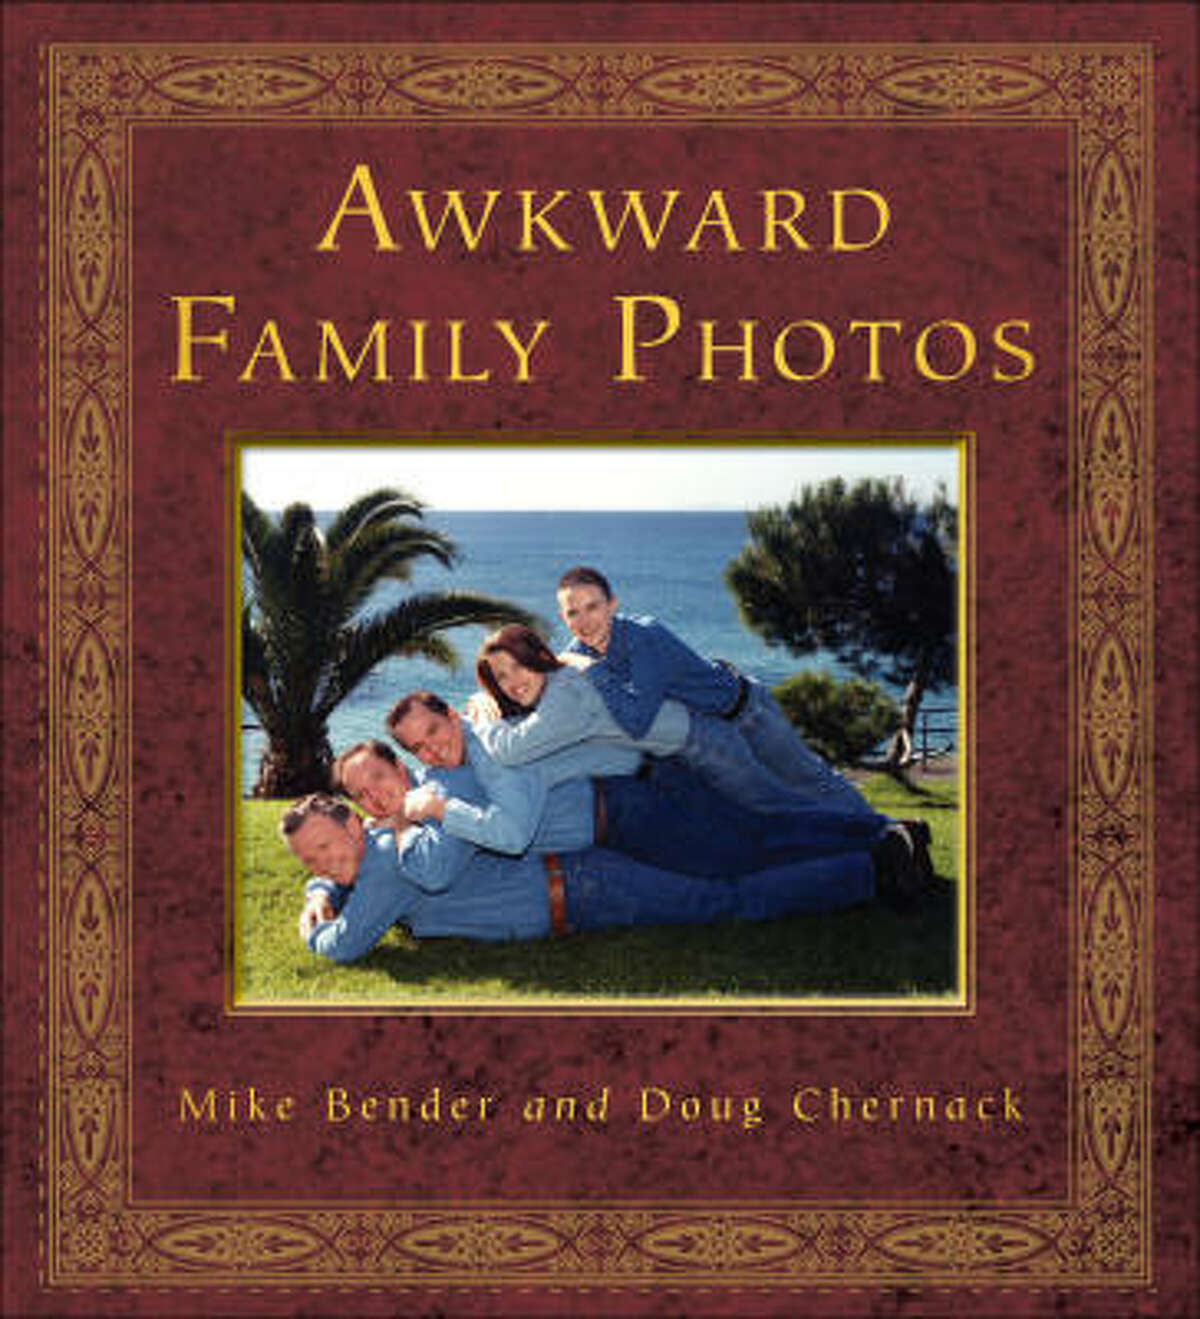 Awkward Family Photos , by Mike Bender and Doug Chernack, is a collection of just what the title says. Read how the authors came up with the idea and upload one of your own here.